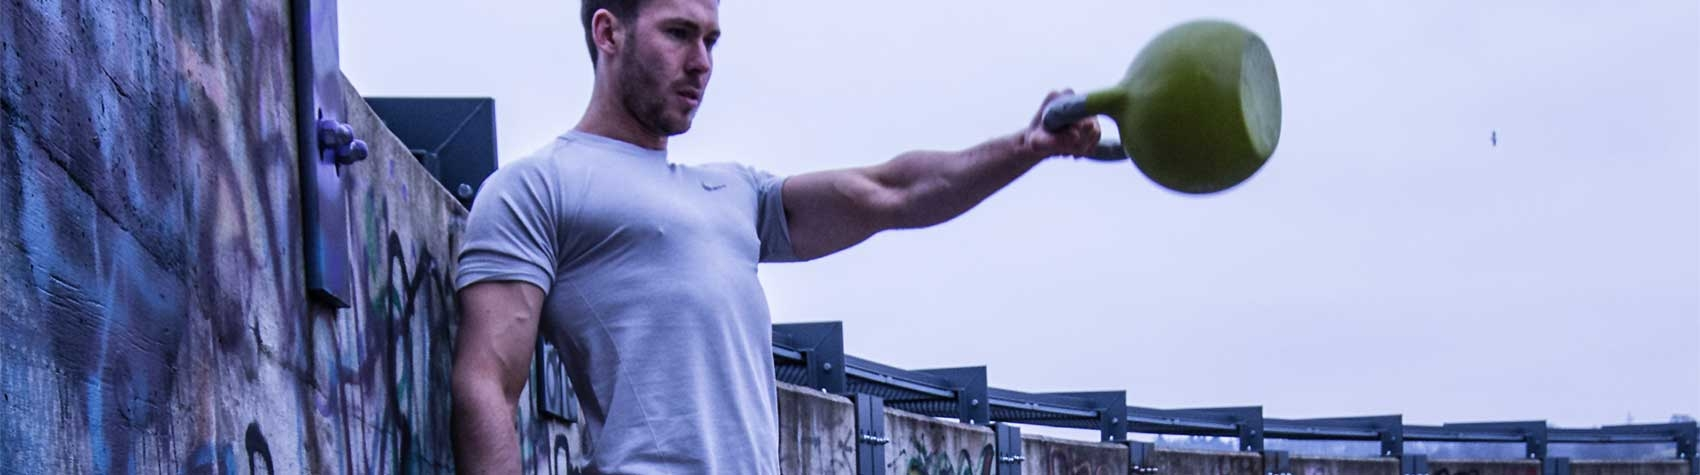 Exerciser swinging a kettlebell